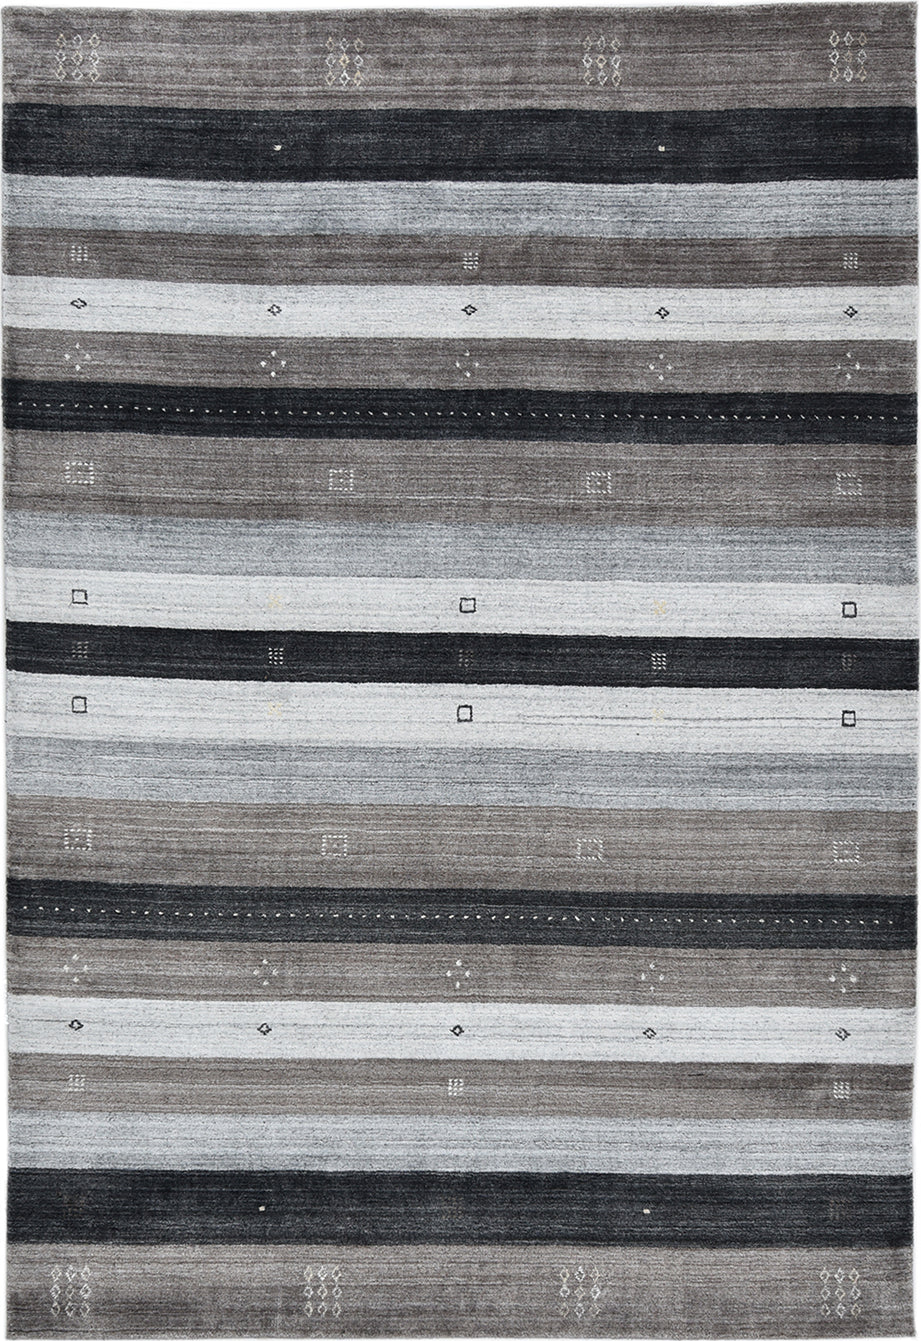 Solo Rugs Gabbeh M8081-152 Brown Area Rug main image